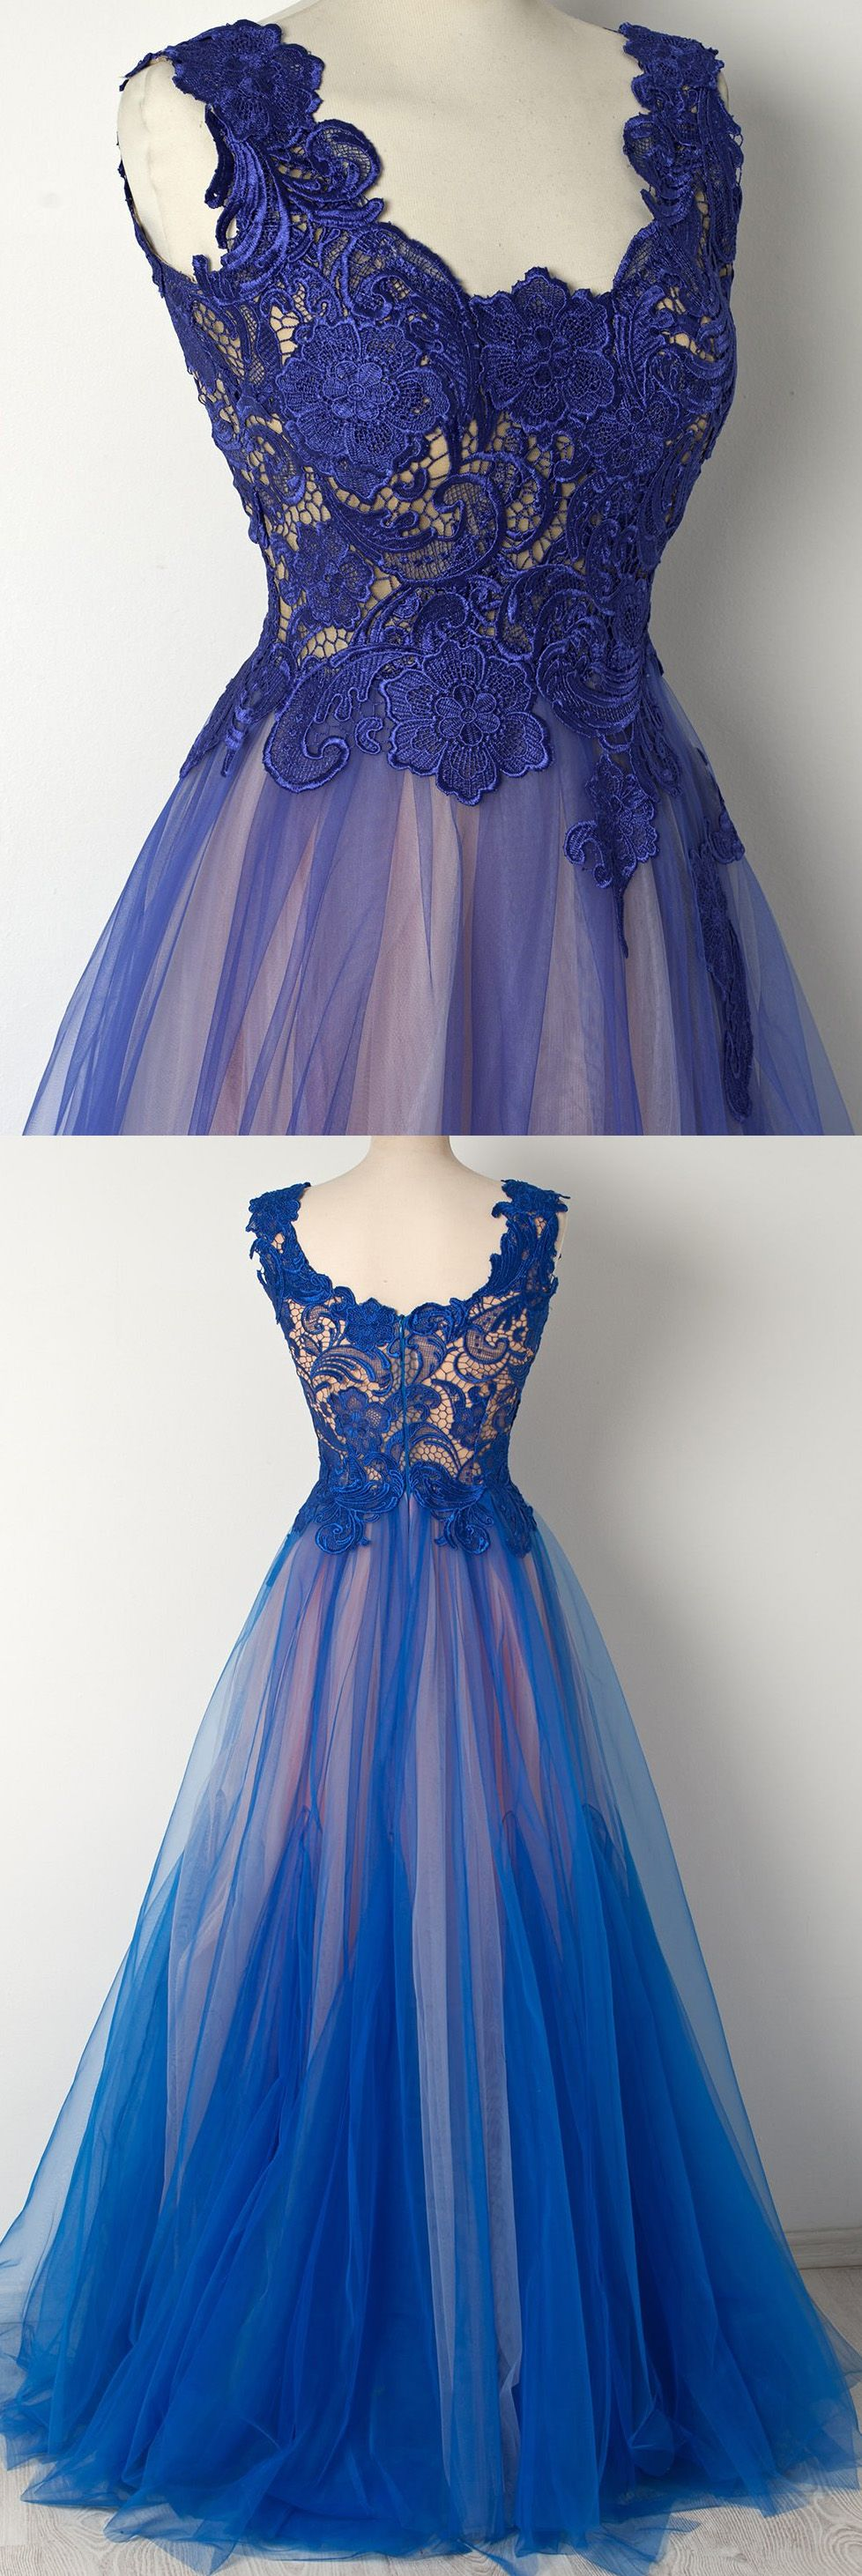 Outlet comely royal blue long prom evening dress with zipper lace